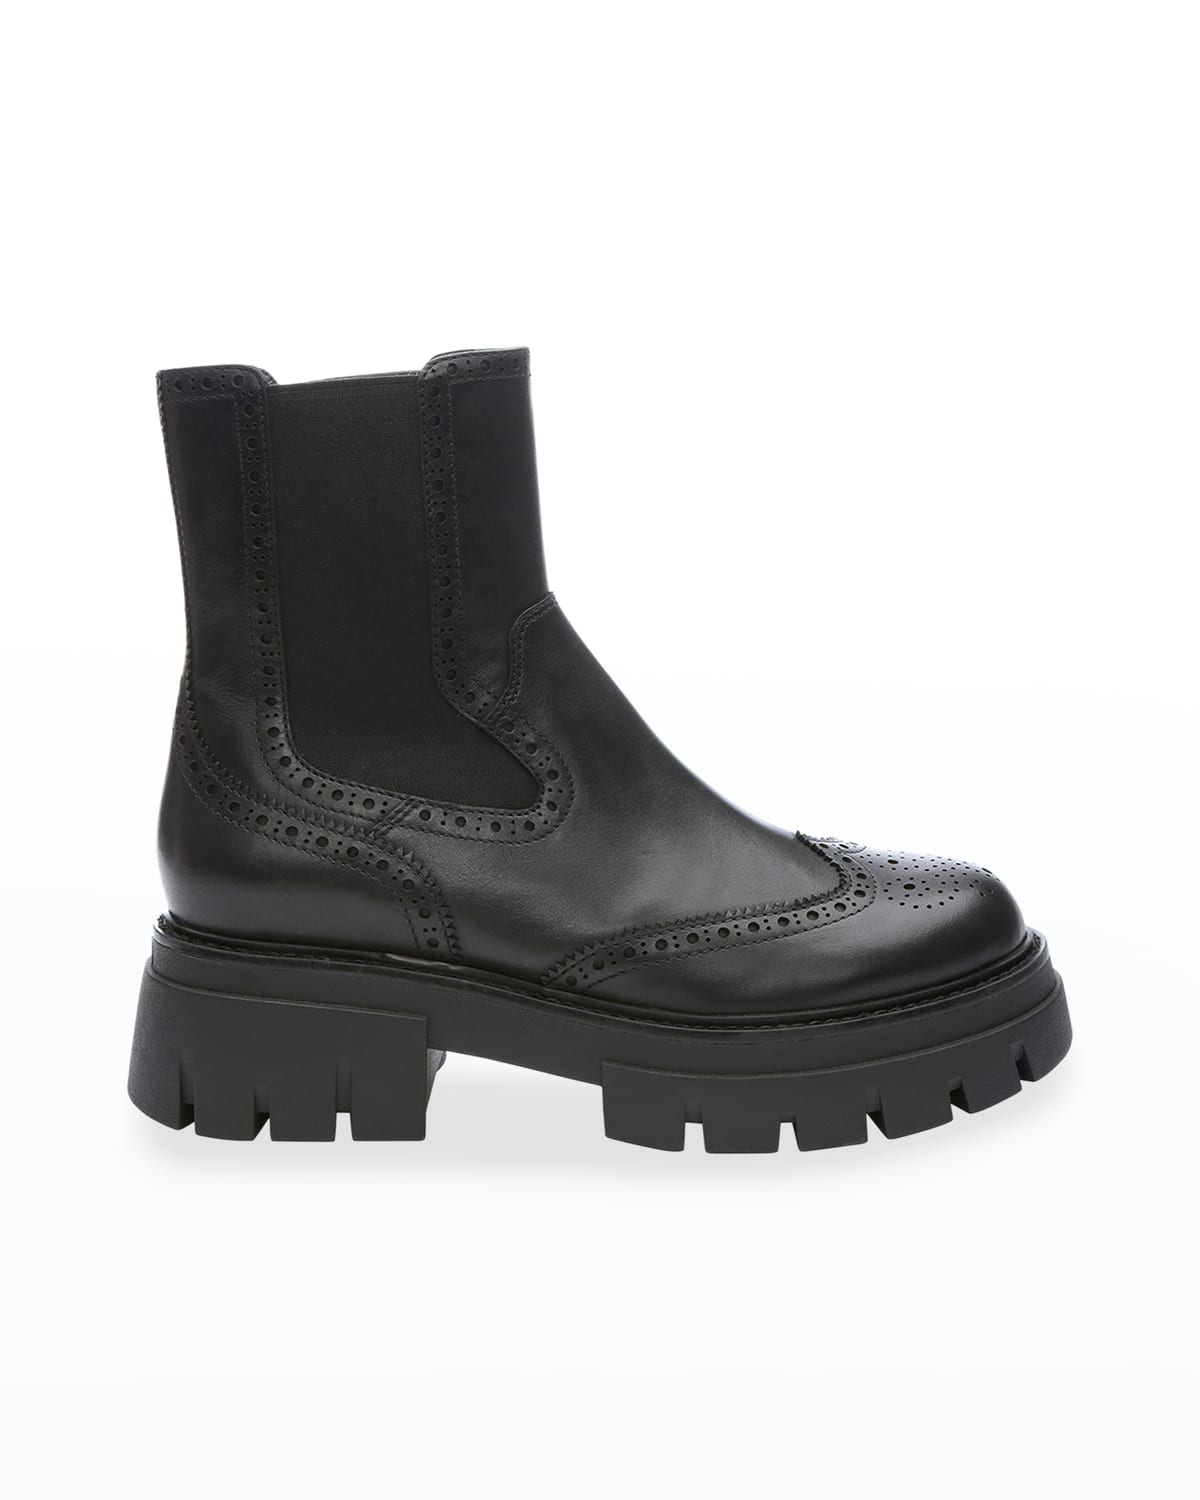 Lover Leather Wing-Tip Chelsea Boots